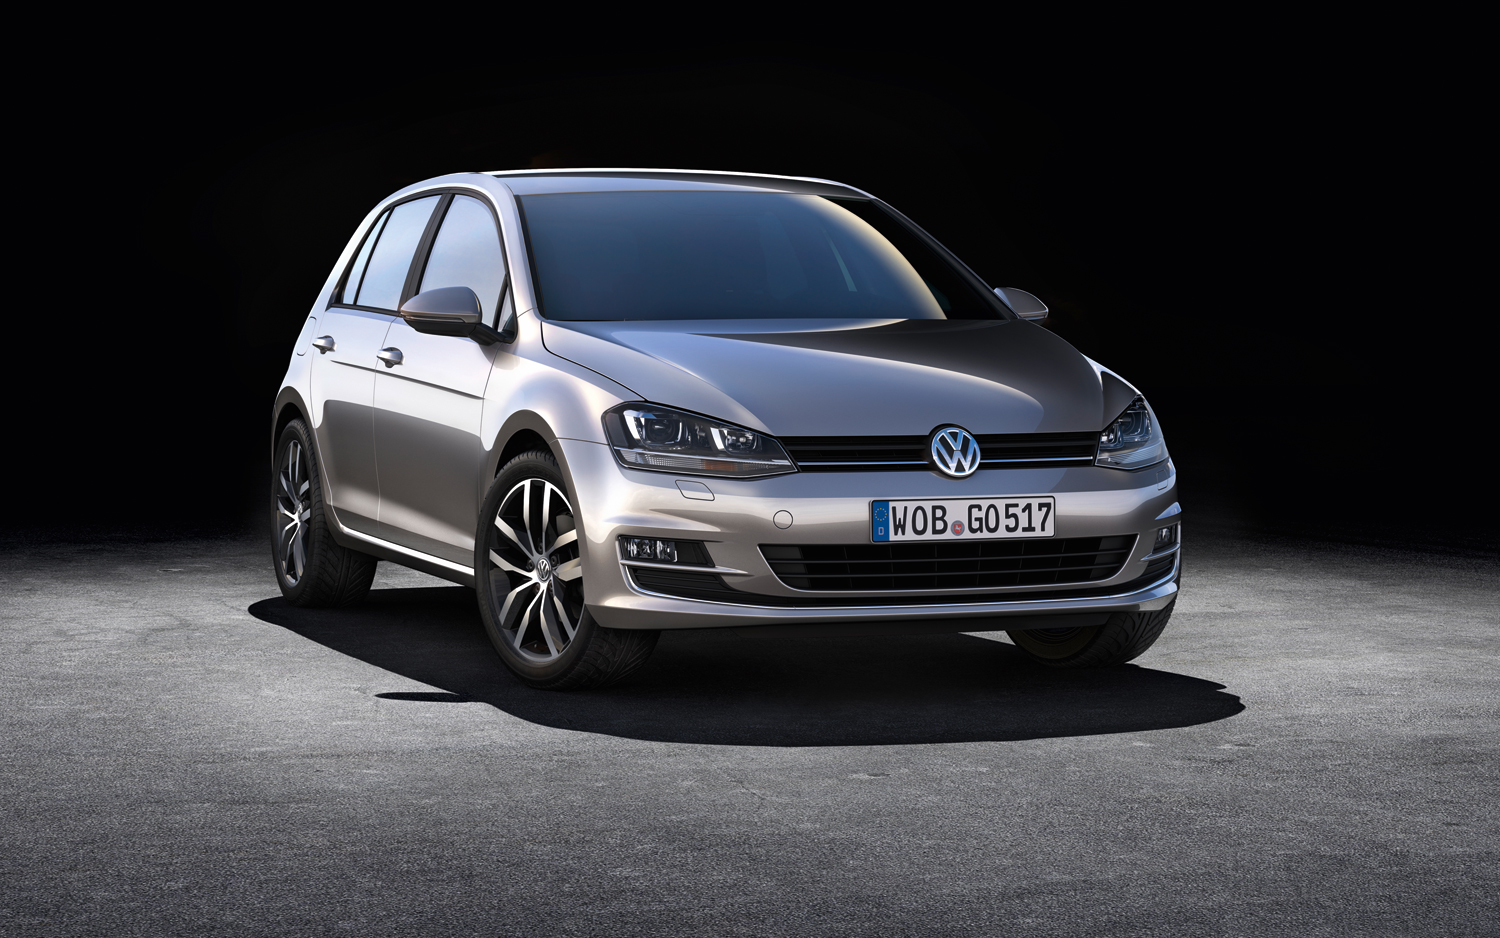 2014 Volkswagen Golf Hd wallpapers New cars reviews 1500x938